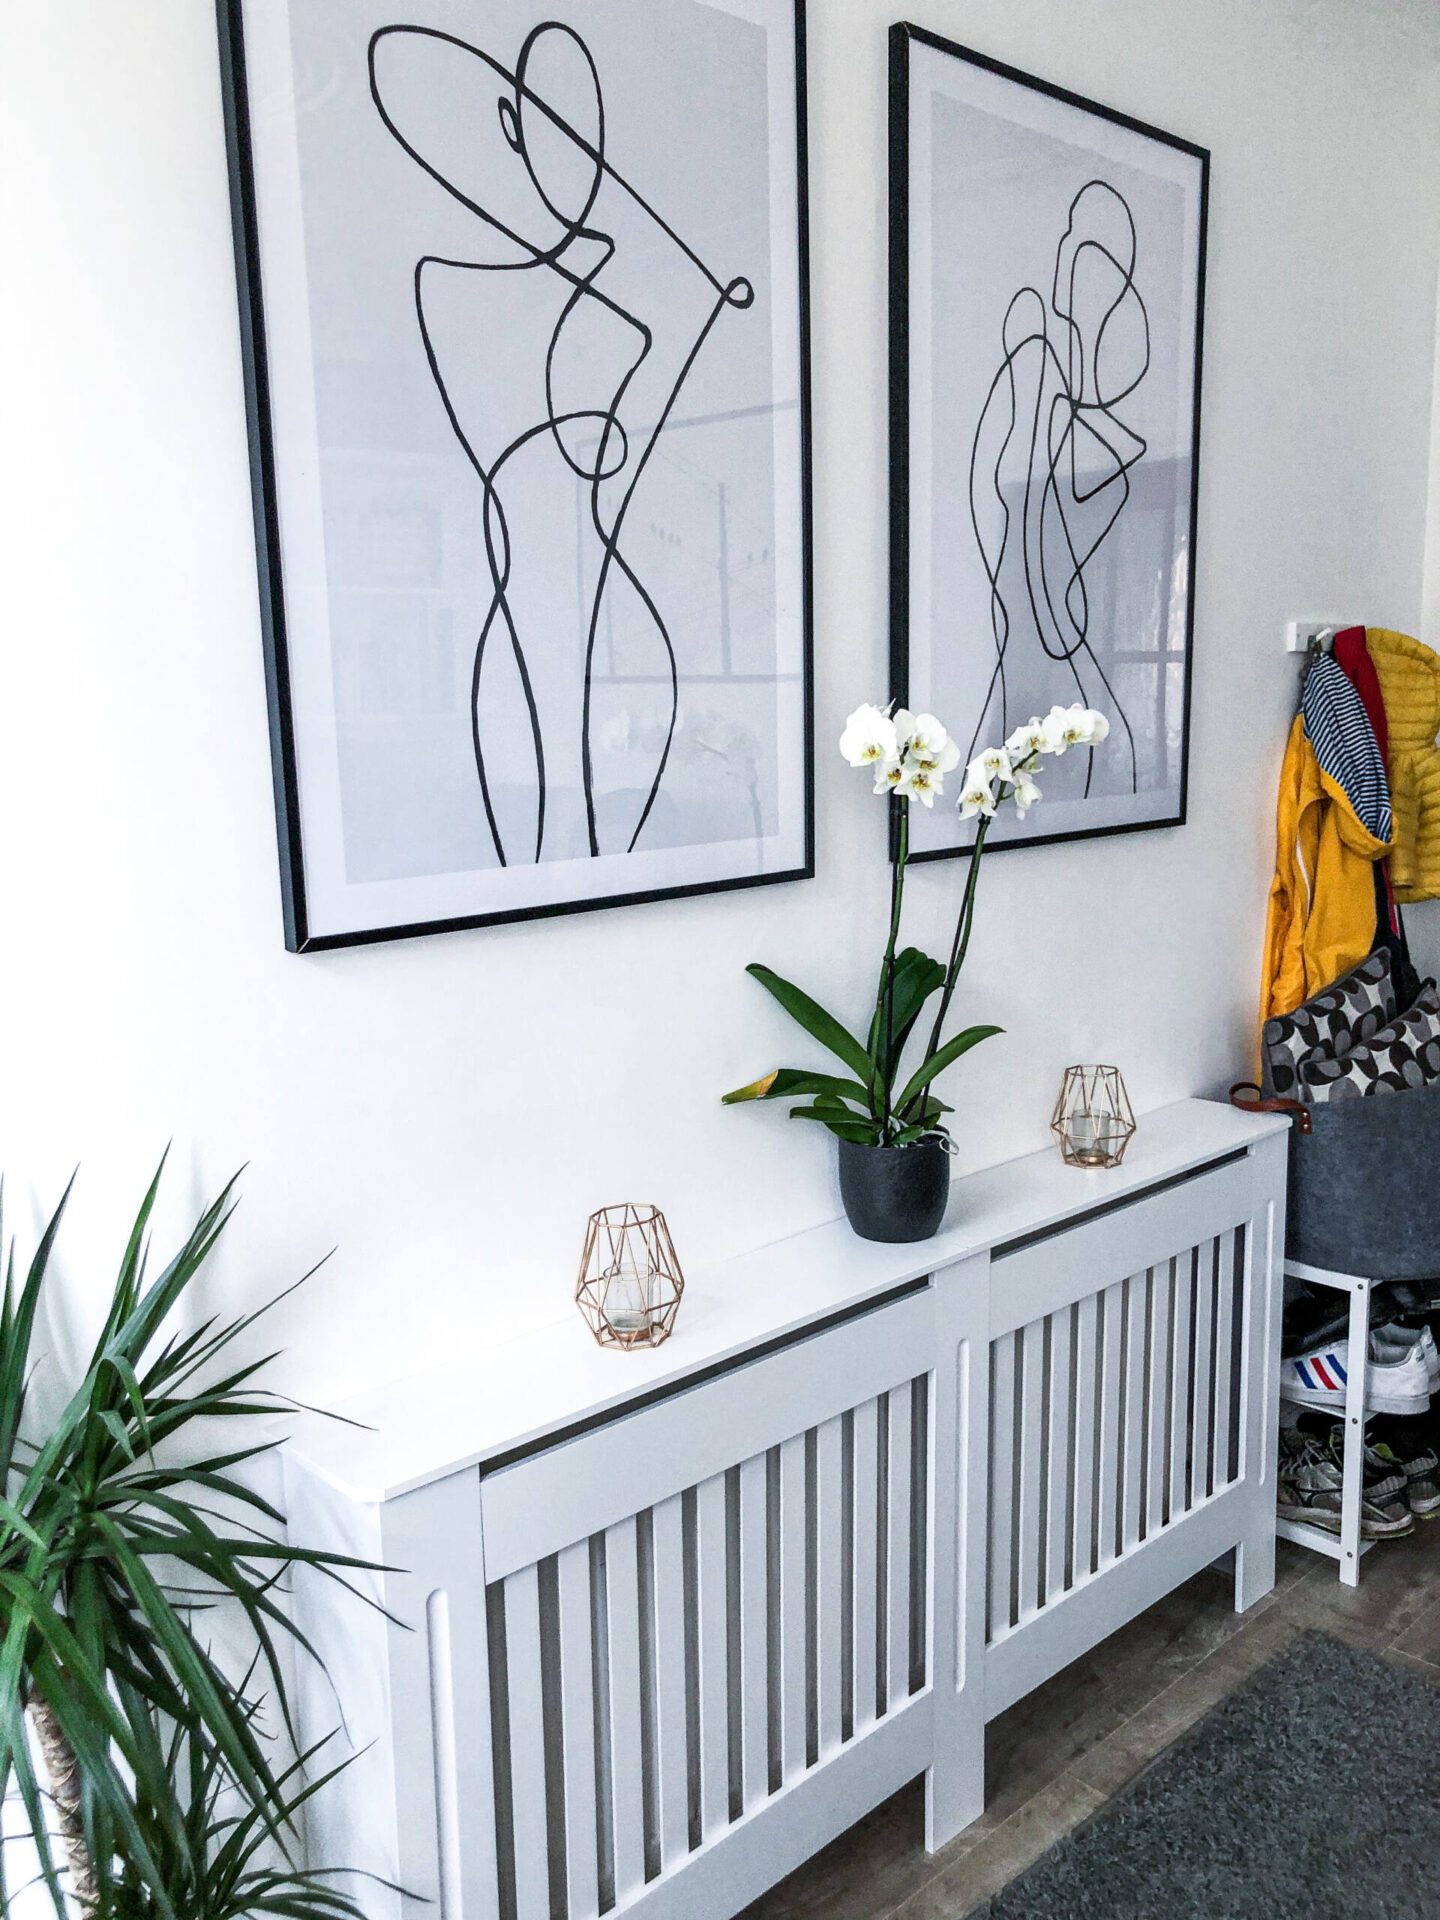 Desenio line art posters above a radiator cover